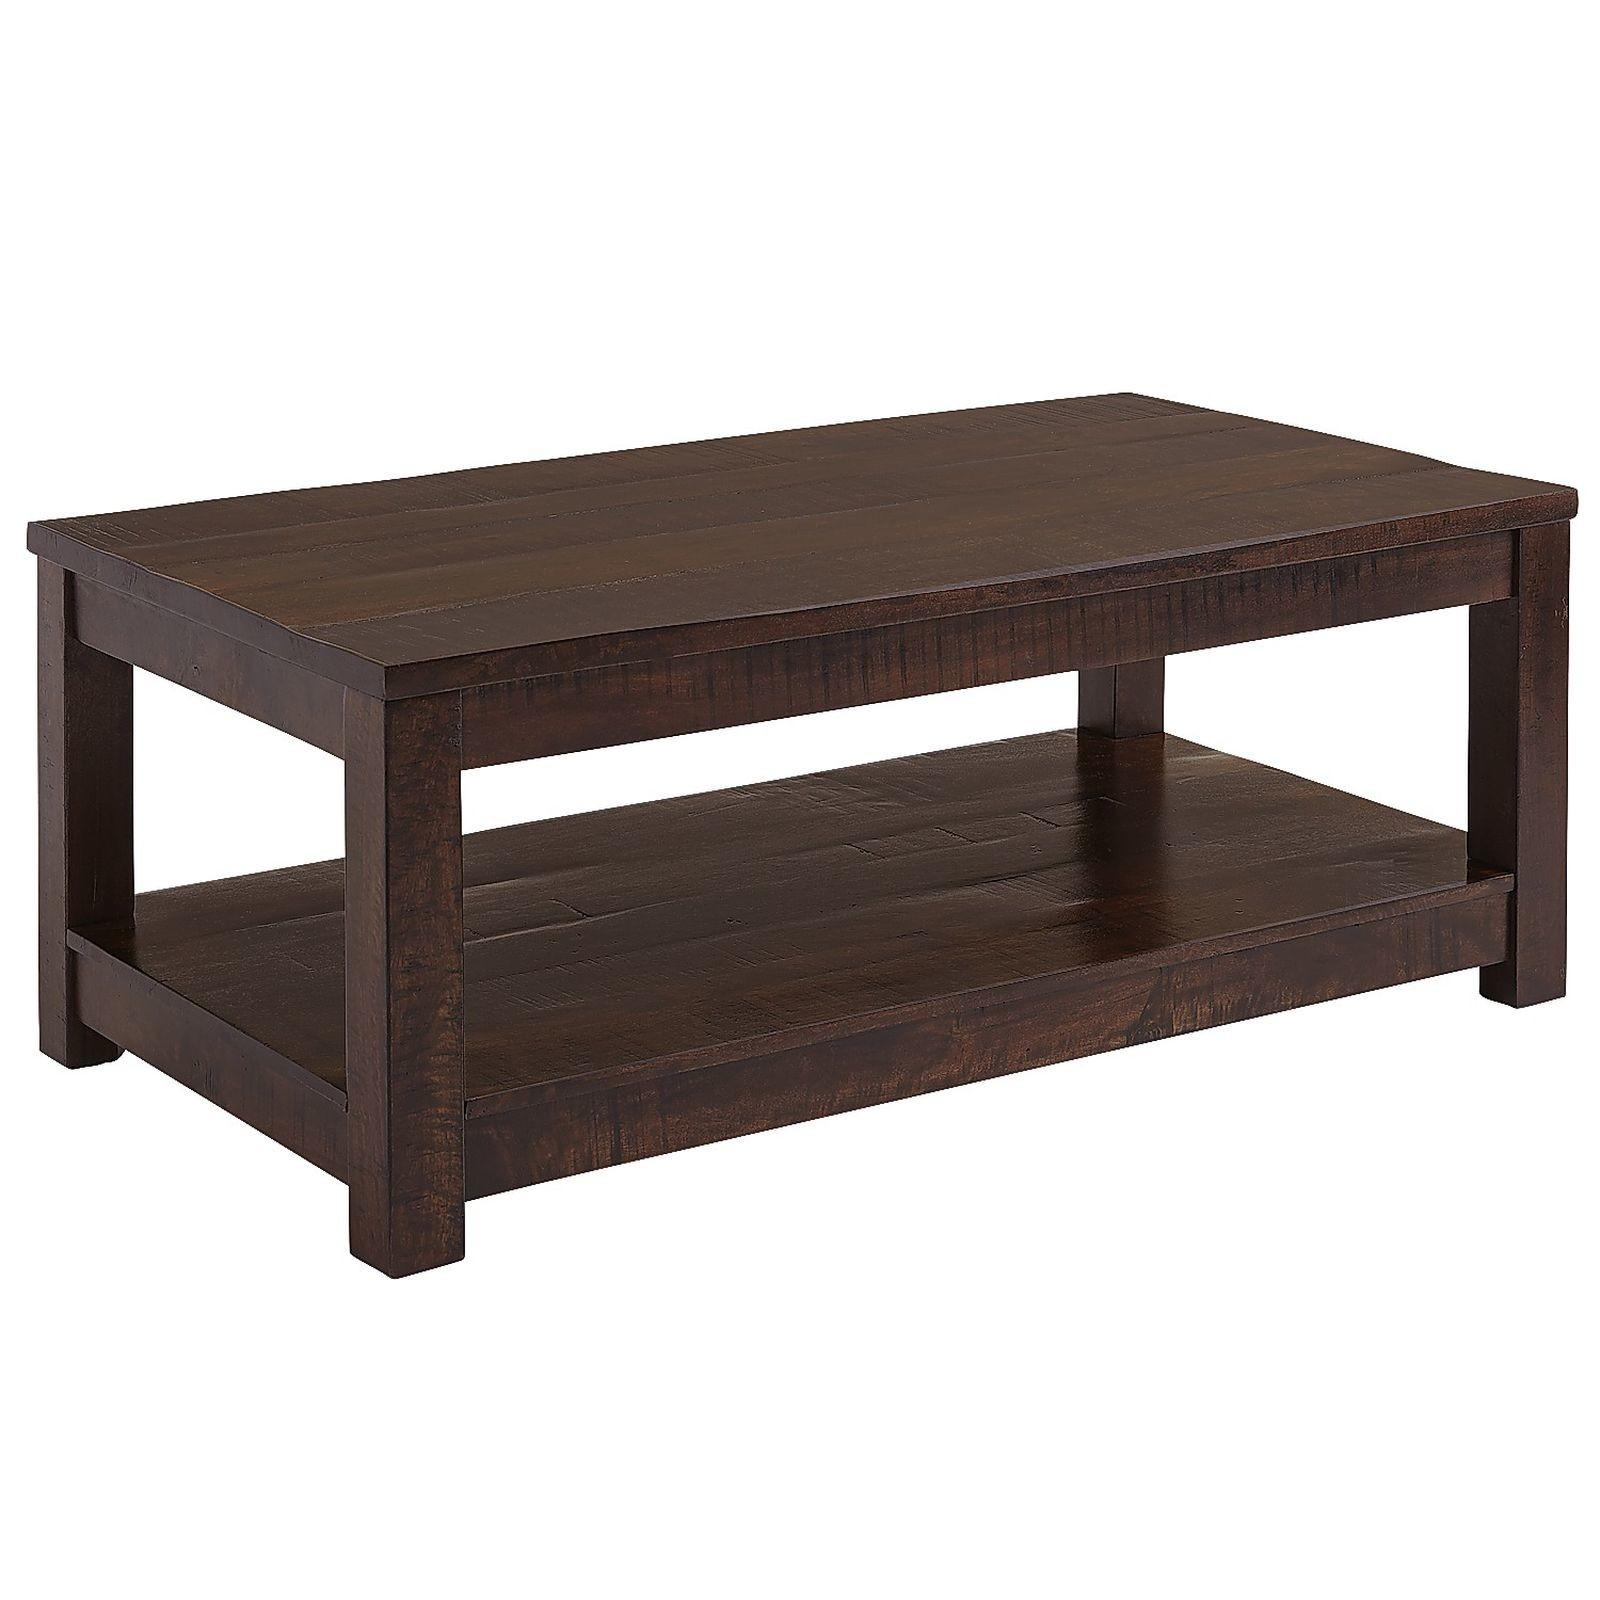 Beautiful Coffee Table Pier One Your Living Room